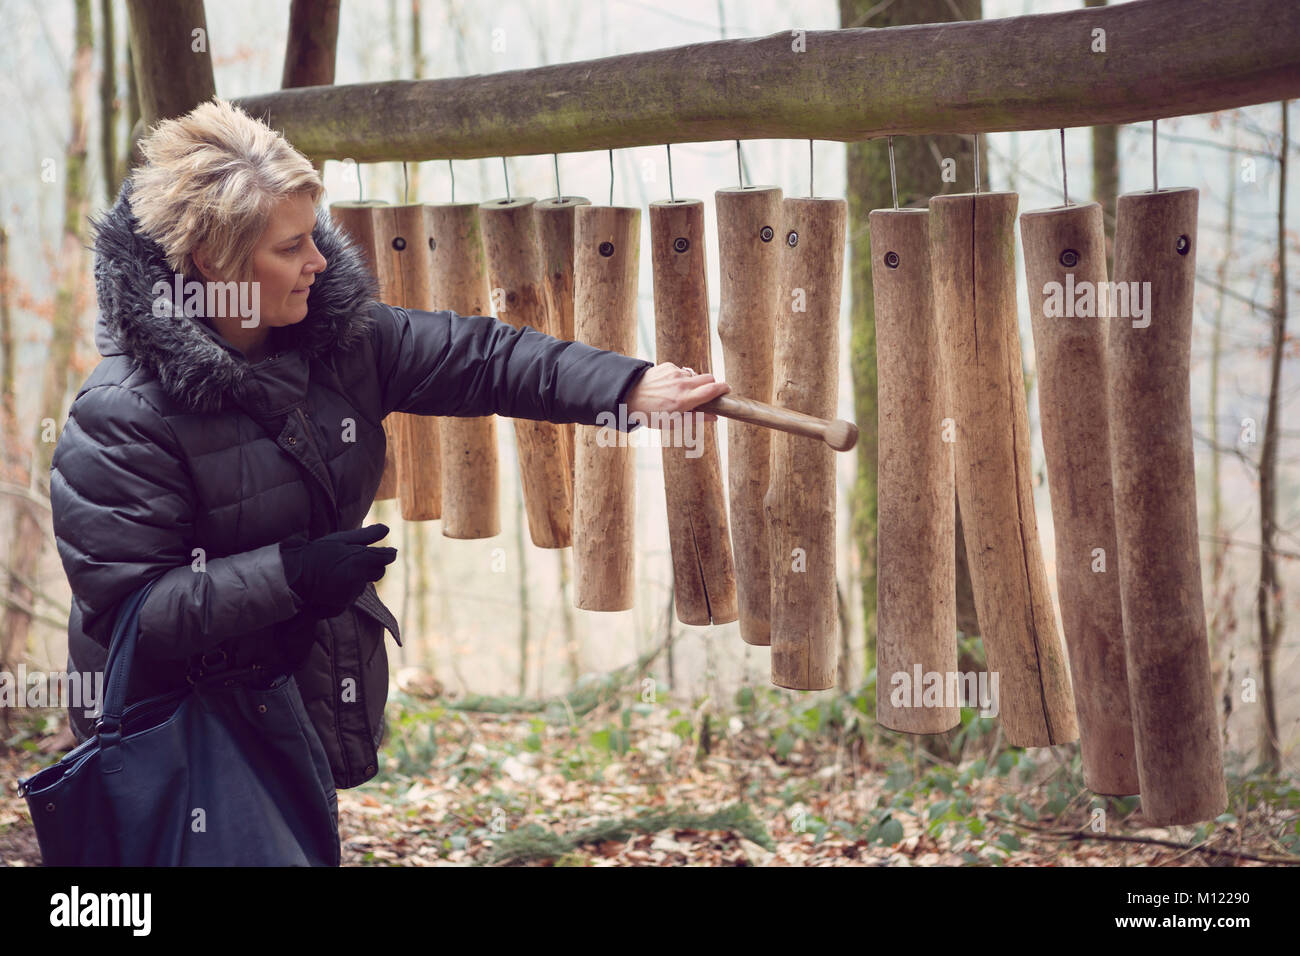 Adult female playing on a large wooden wind chime instrument - Stock Image